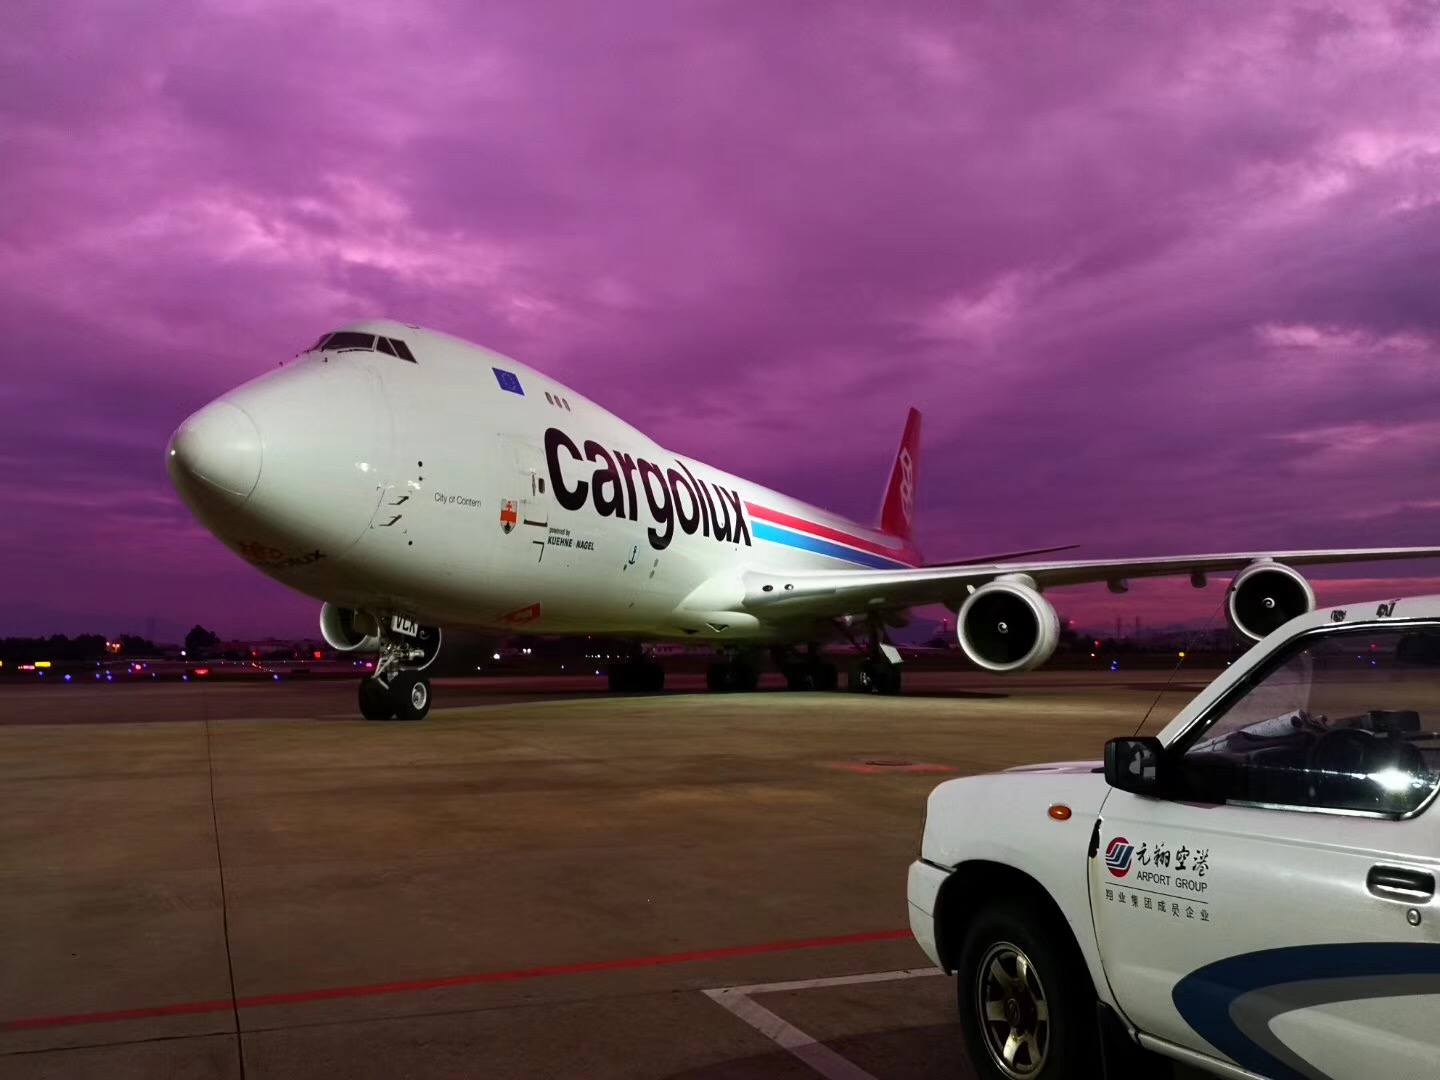 Cargolux and Atlas Air predict a subdued airfreight market in 2020 - Air Cargo News